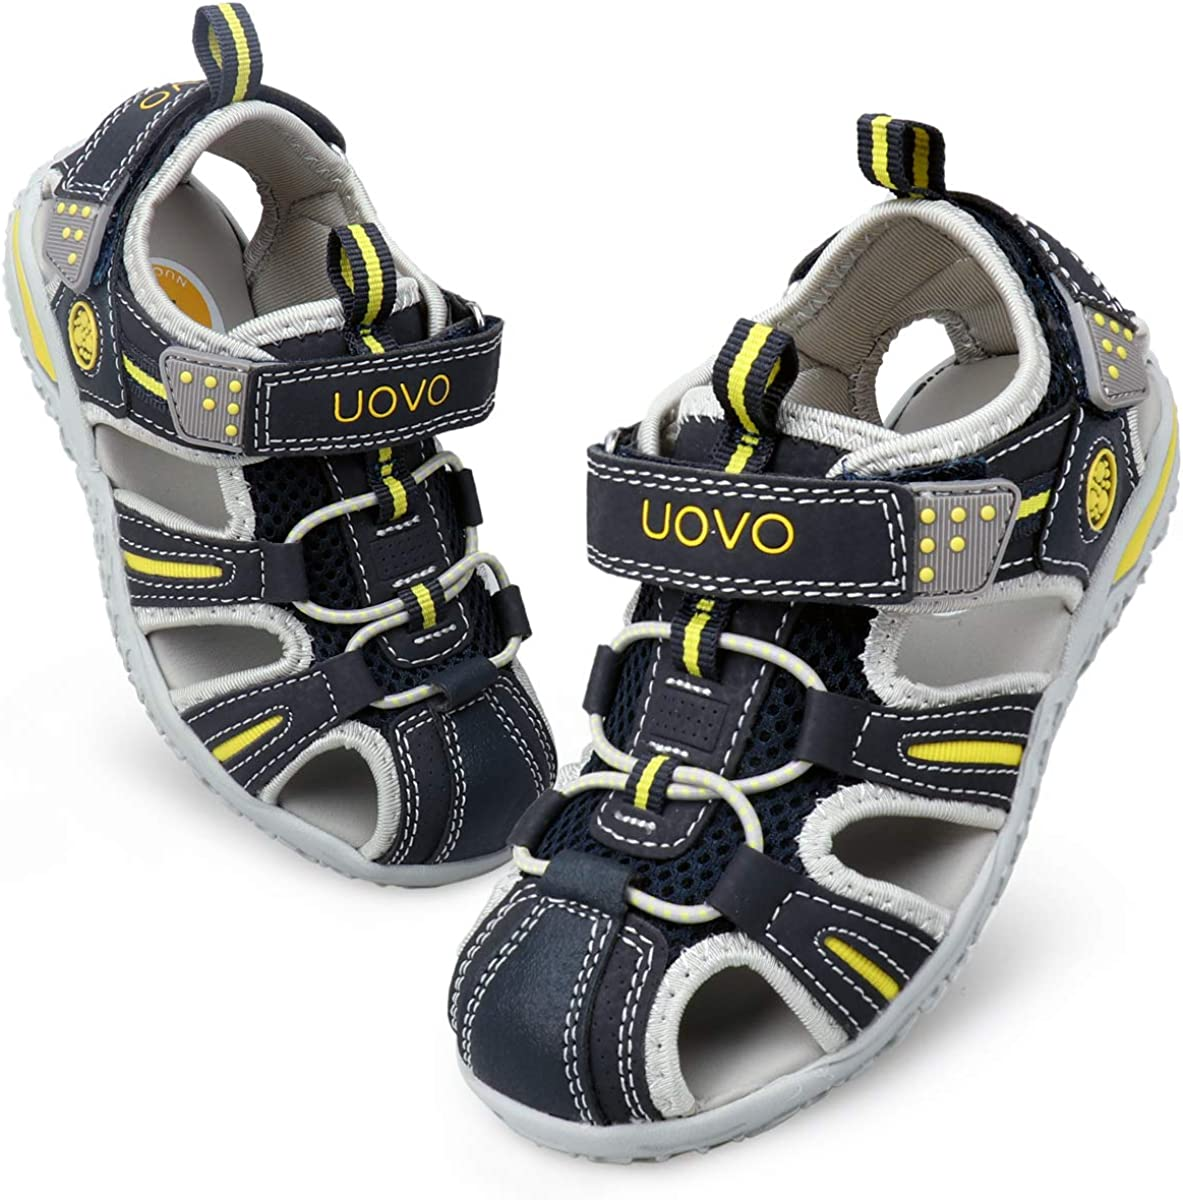 UOVO Boys Sandals Kids Sandals Hiking Athletic Closed-Toe Beach Summer Sandals for Boys Quick-Drying Slip Resistant